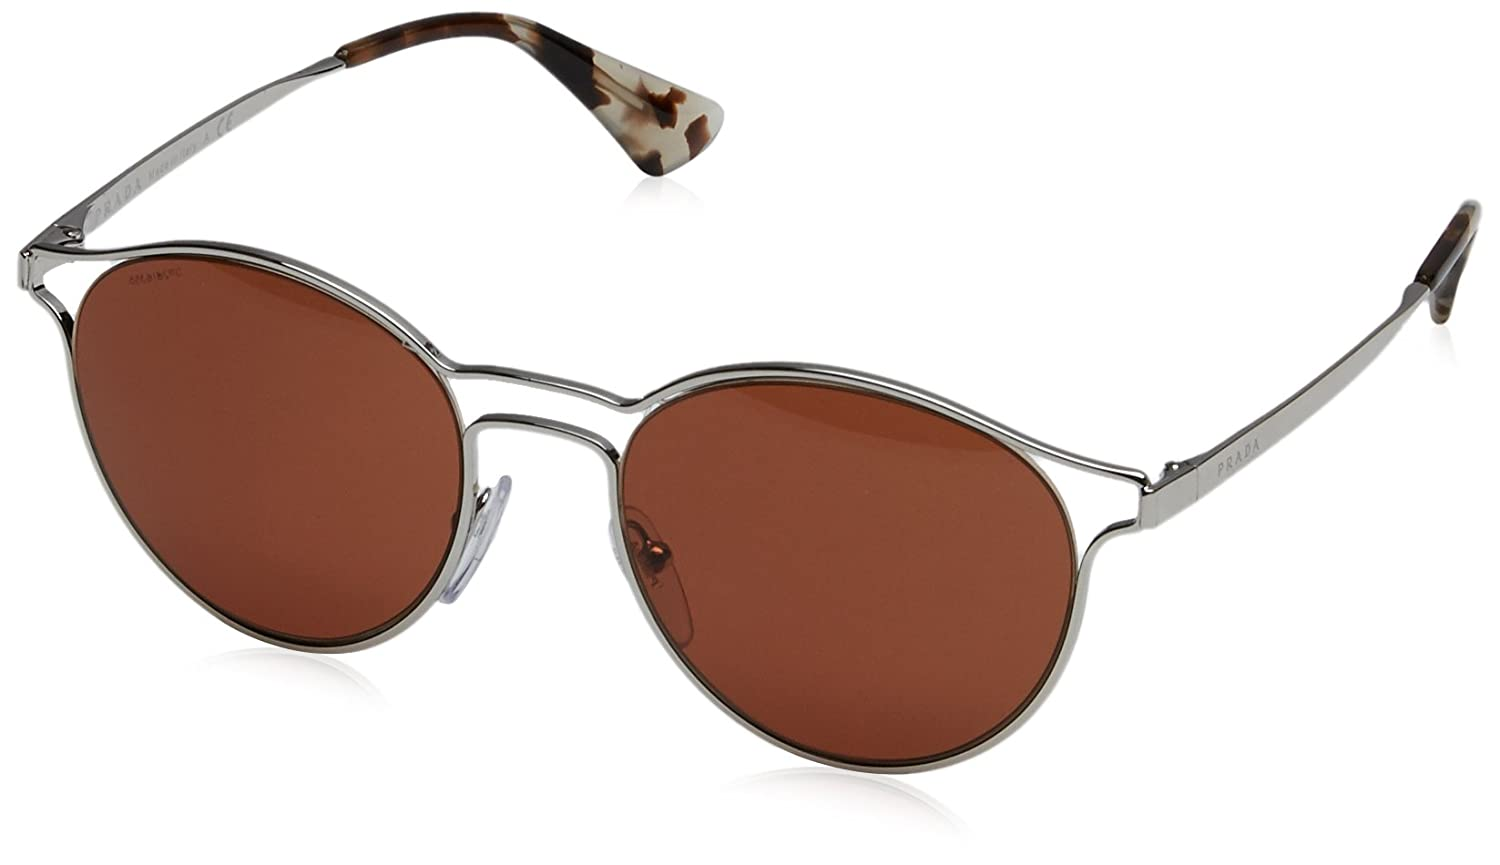 f0a16a73d4edf Prada Women s PR 62SS Sunglasses Silver   Brown 53mm at Amazon Men s  Clothing store